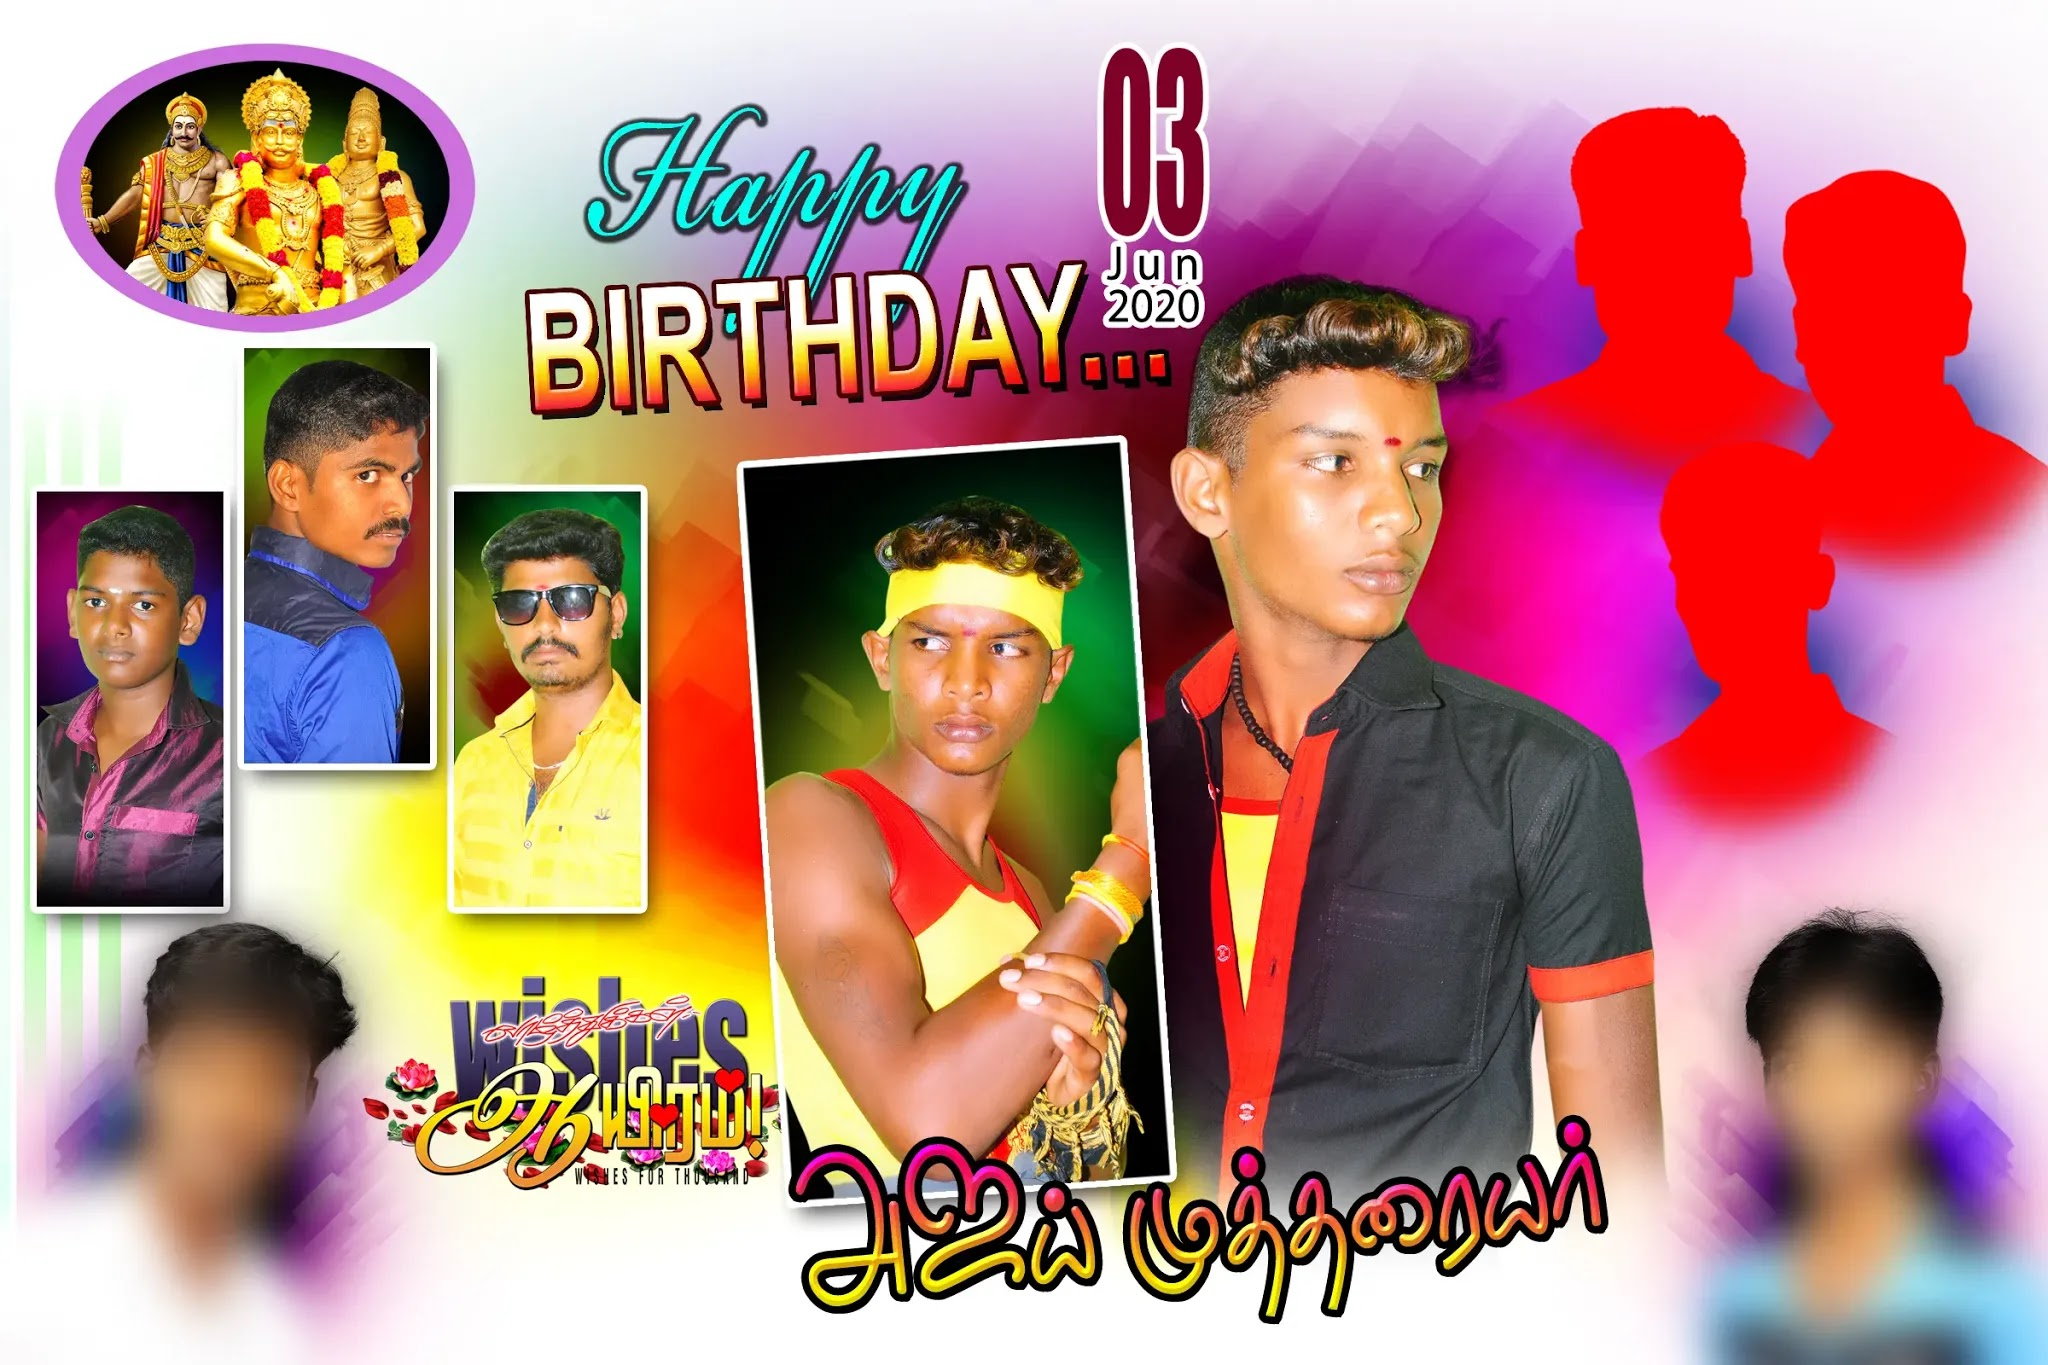 Birthday Poster Design Psd File Free Download Kumaran Network How to design a banner for printing. birthday poster design psd file free